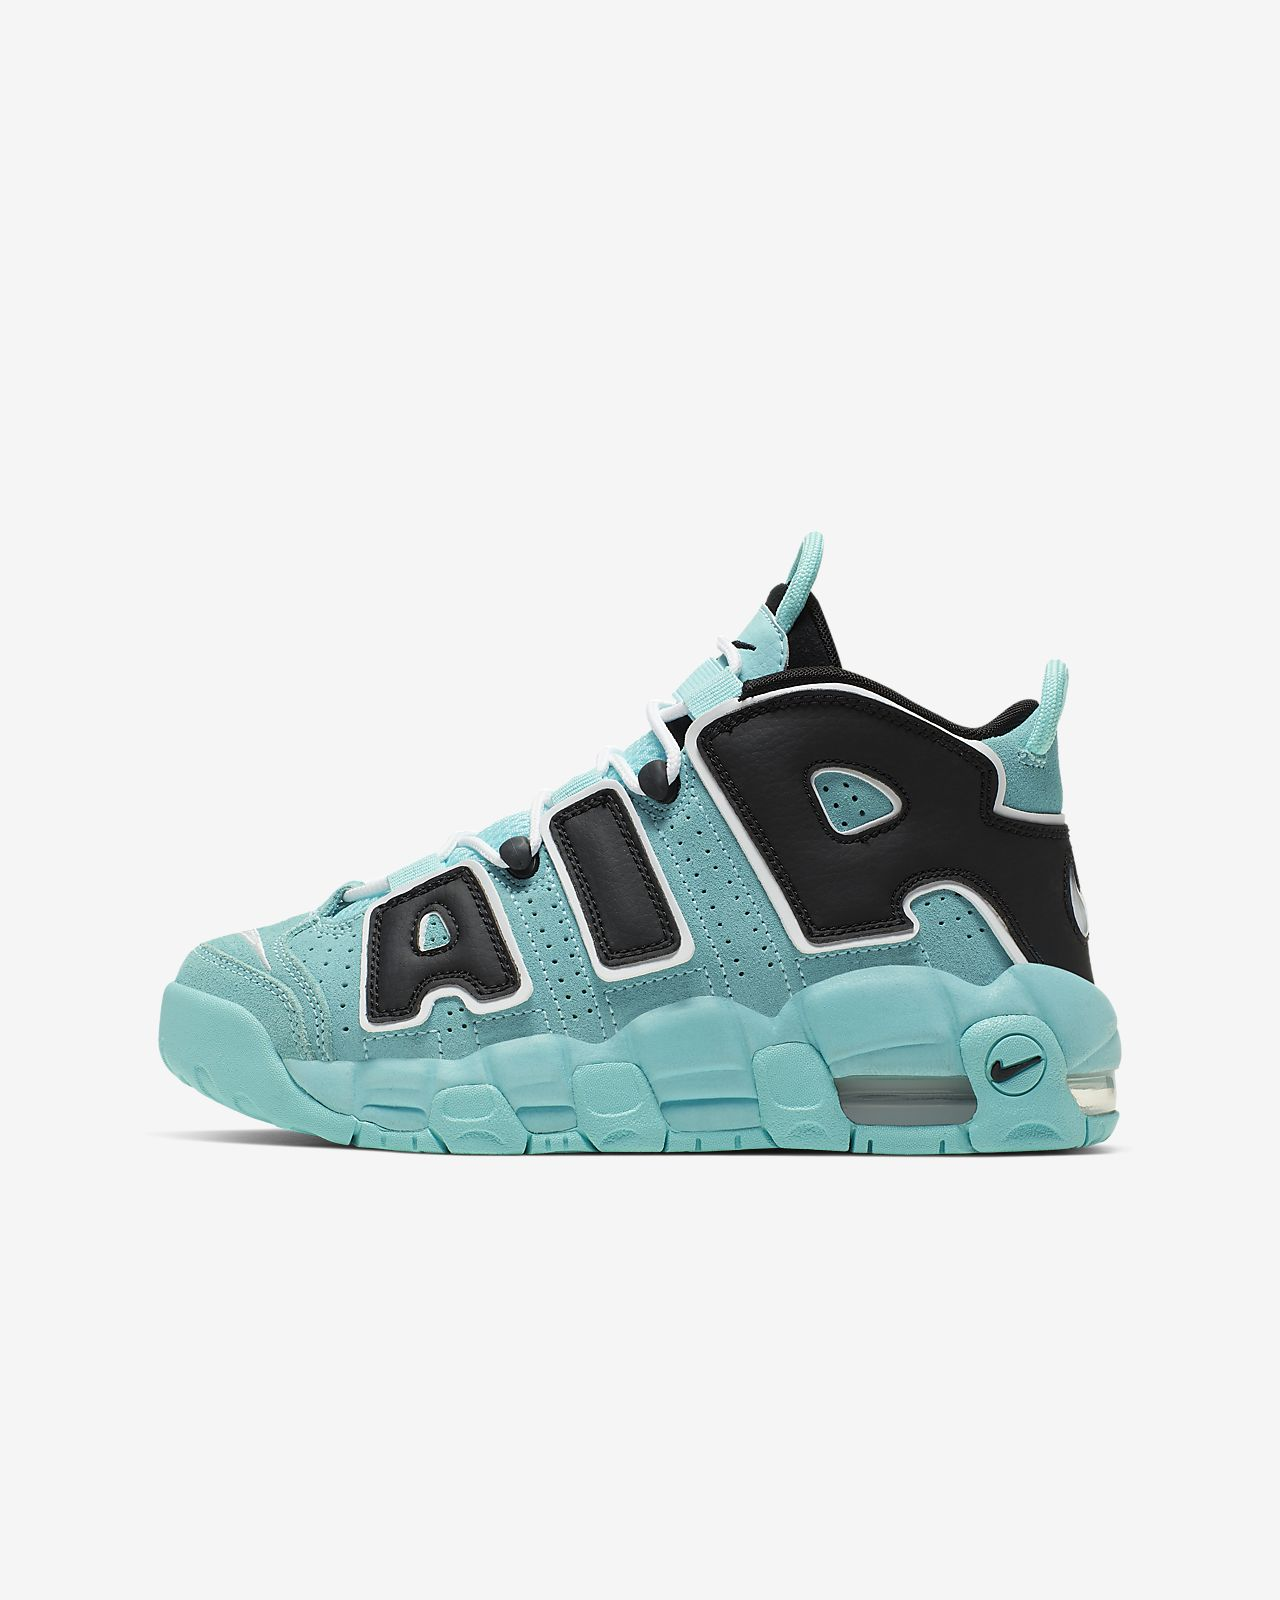 Zapatillas Nike Air More Uptempo : Nike, zapatos de marca de